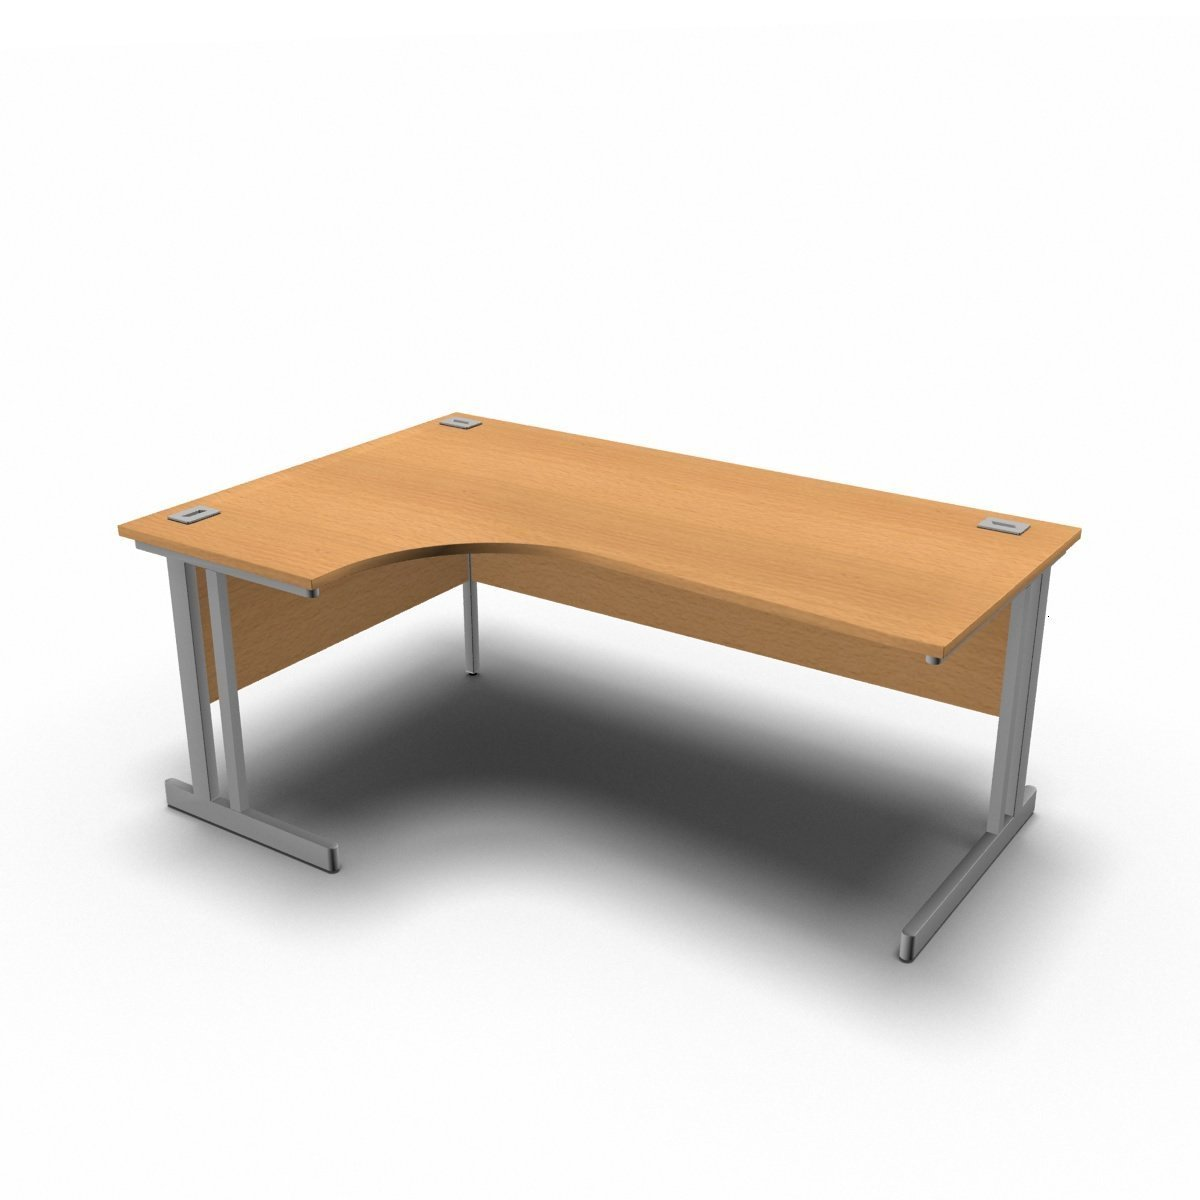 Desk 1800 x 1200 x 800 x 600mm / Left / Beech Synergy Crescent Desks